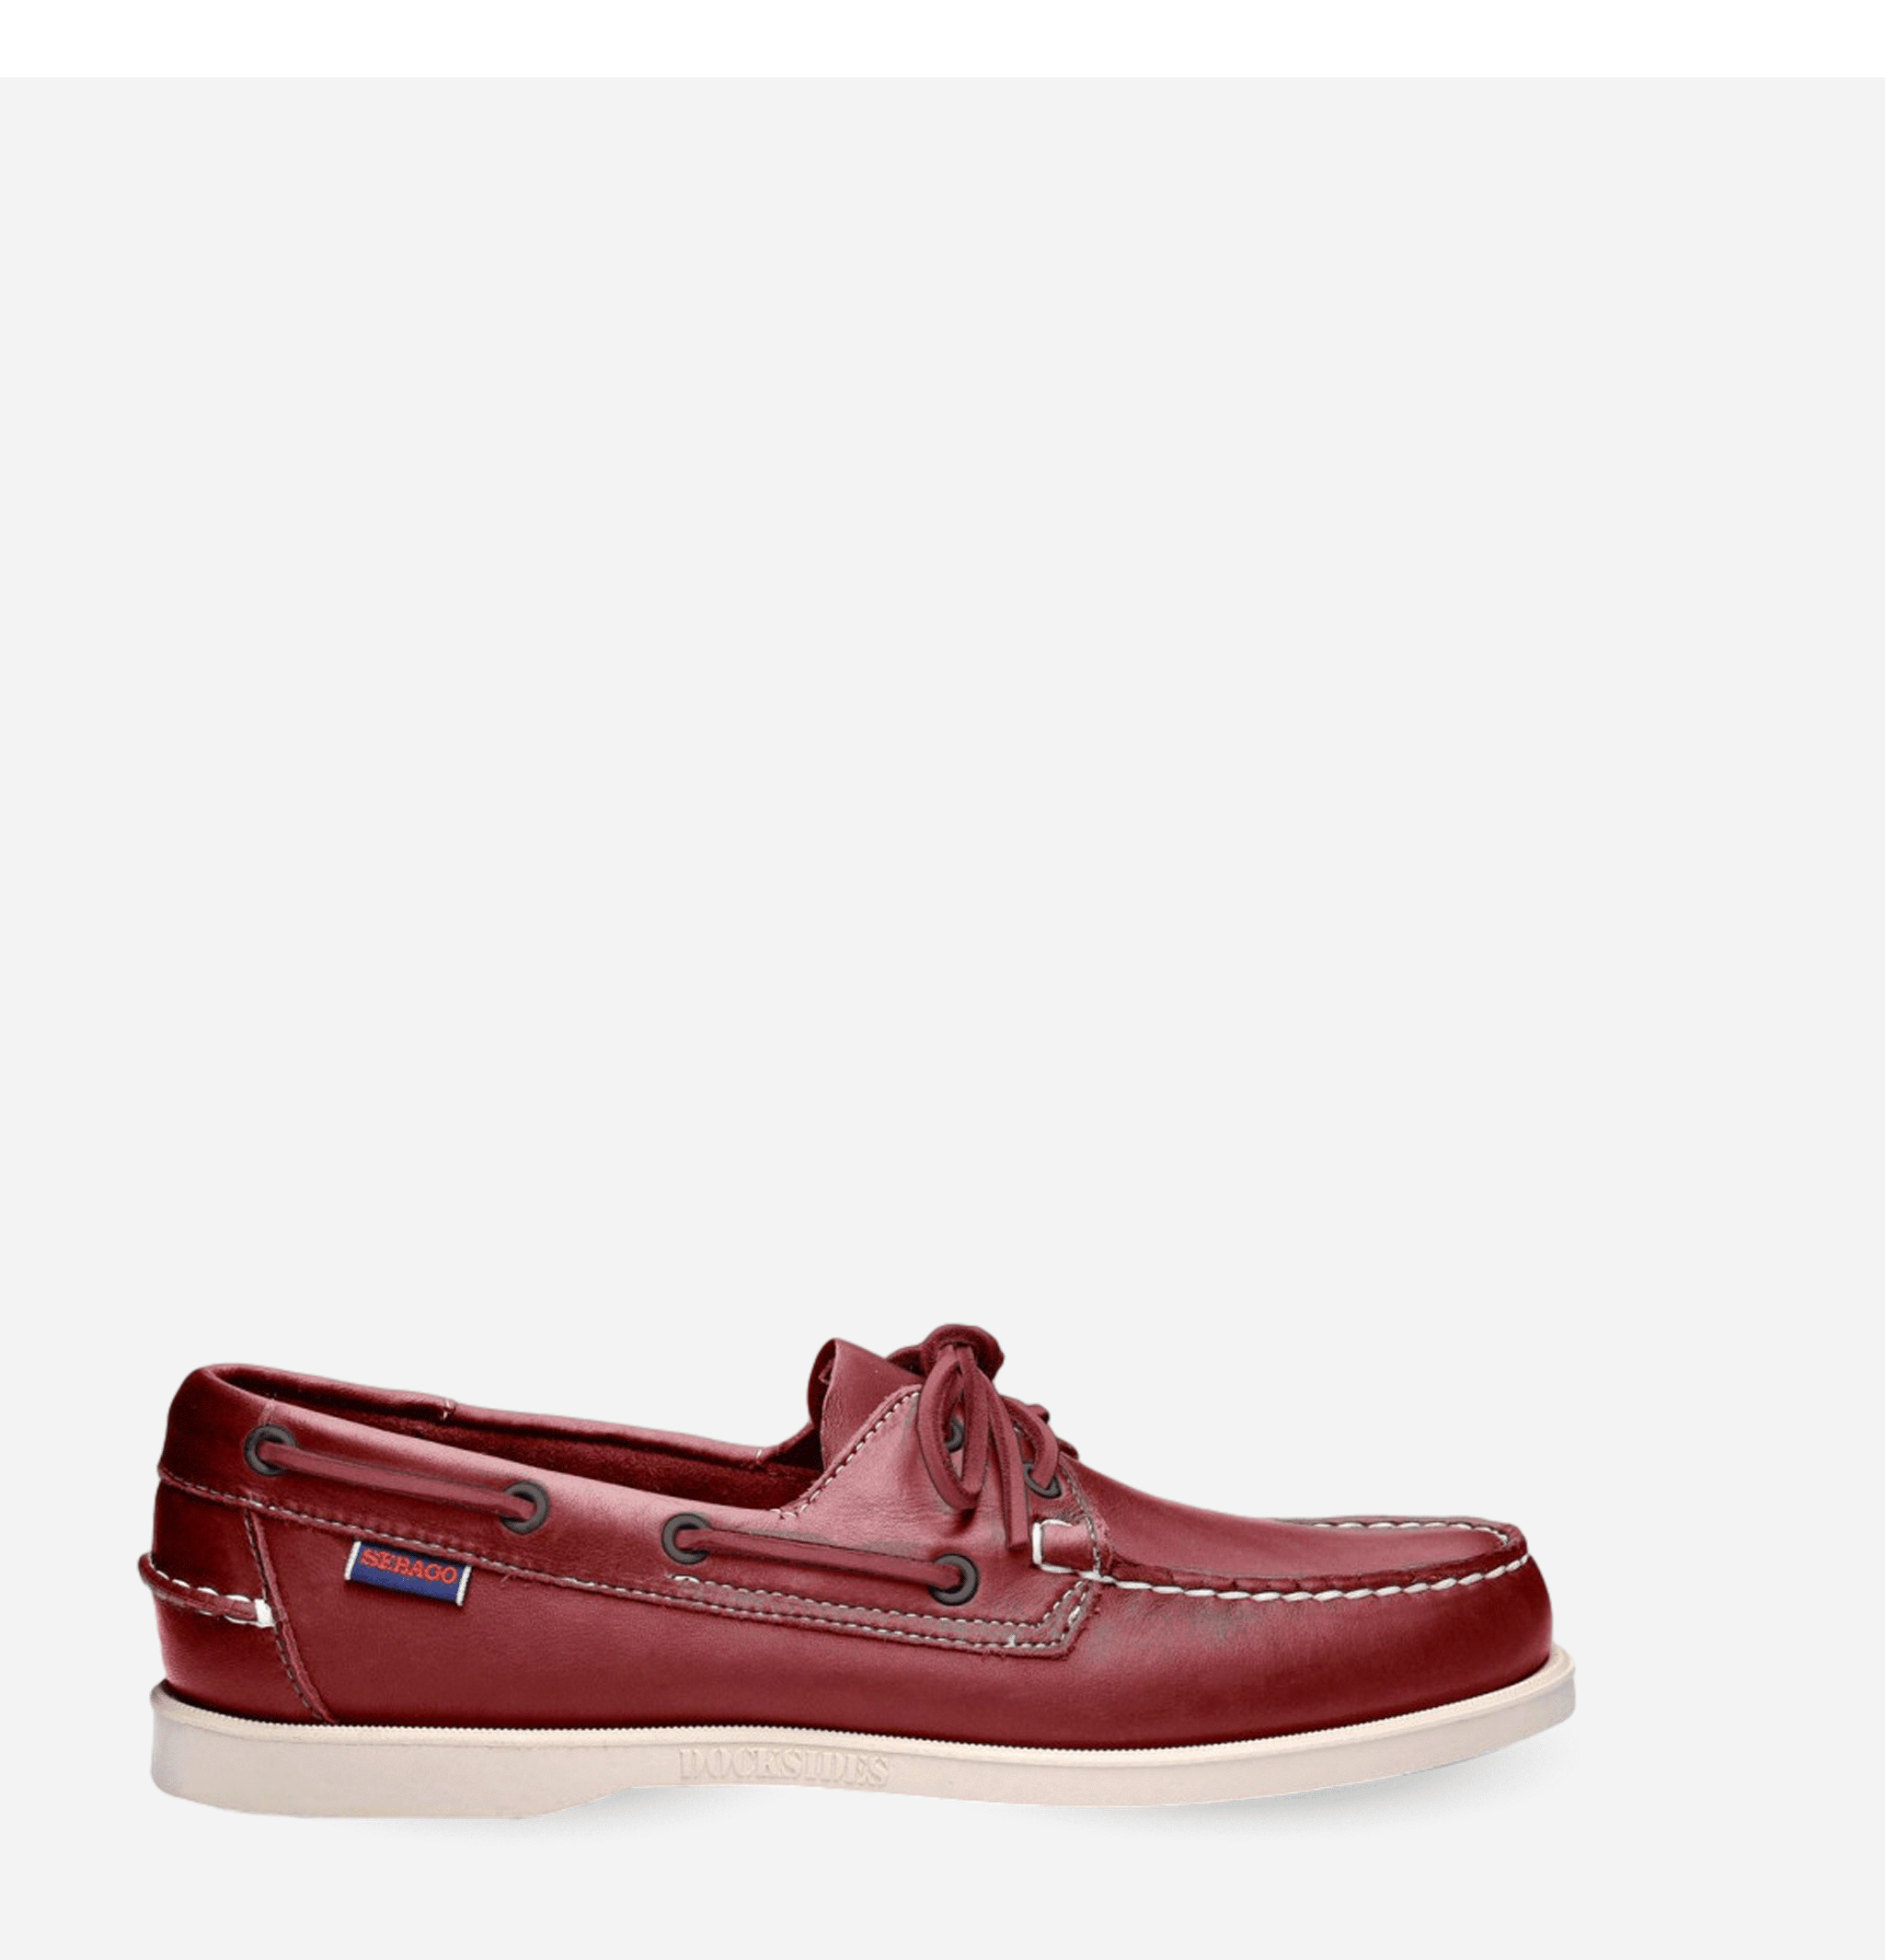 Docksides Shoes Red